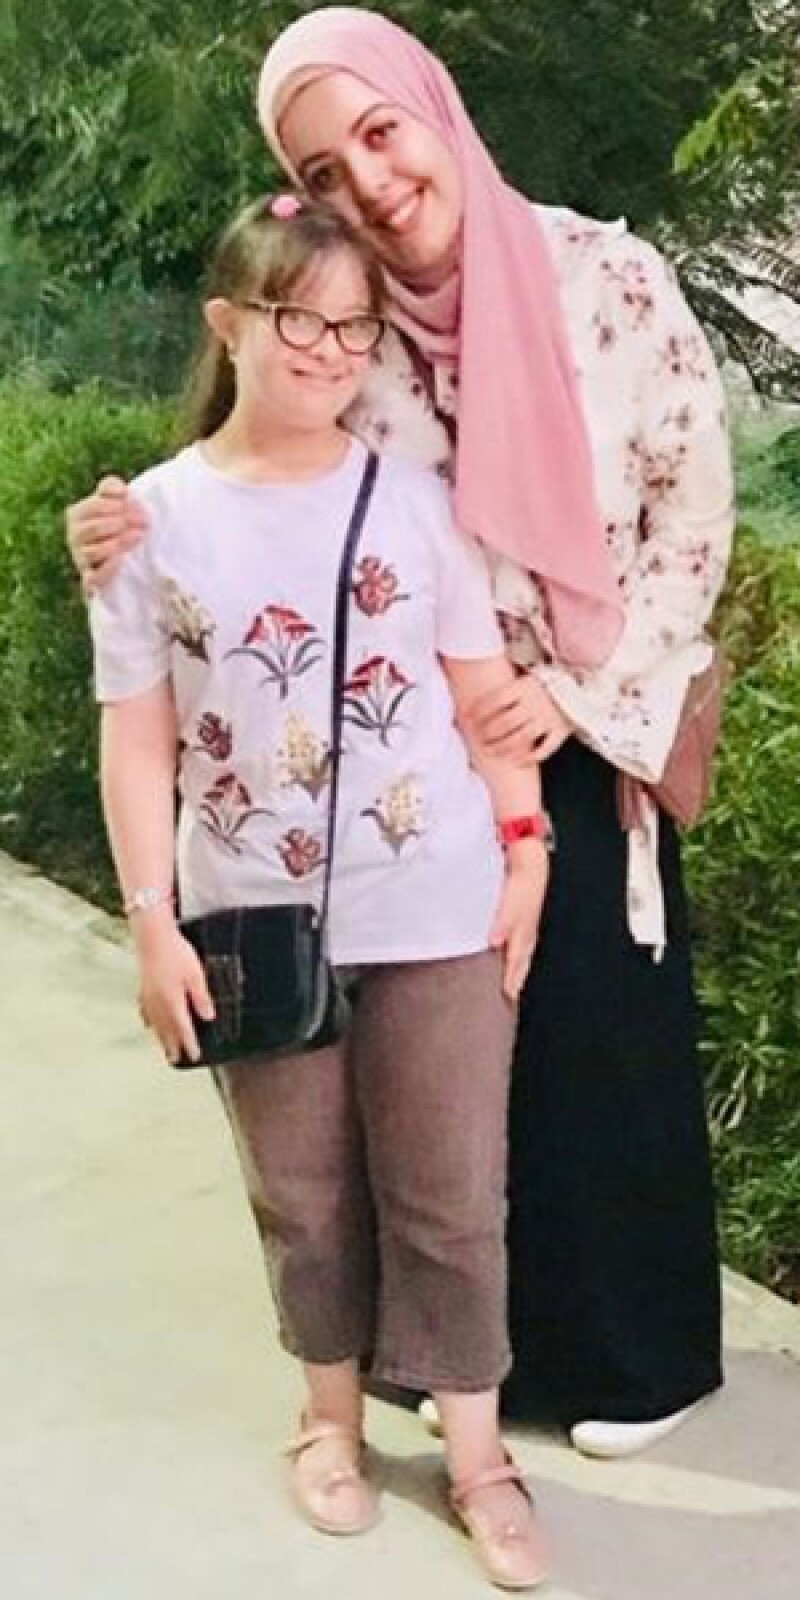 Two young women pose outside together. One woman puts her arm around the other, they both smile.